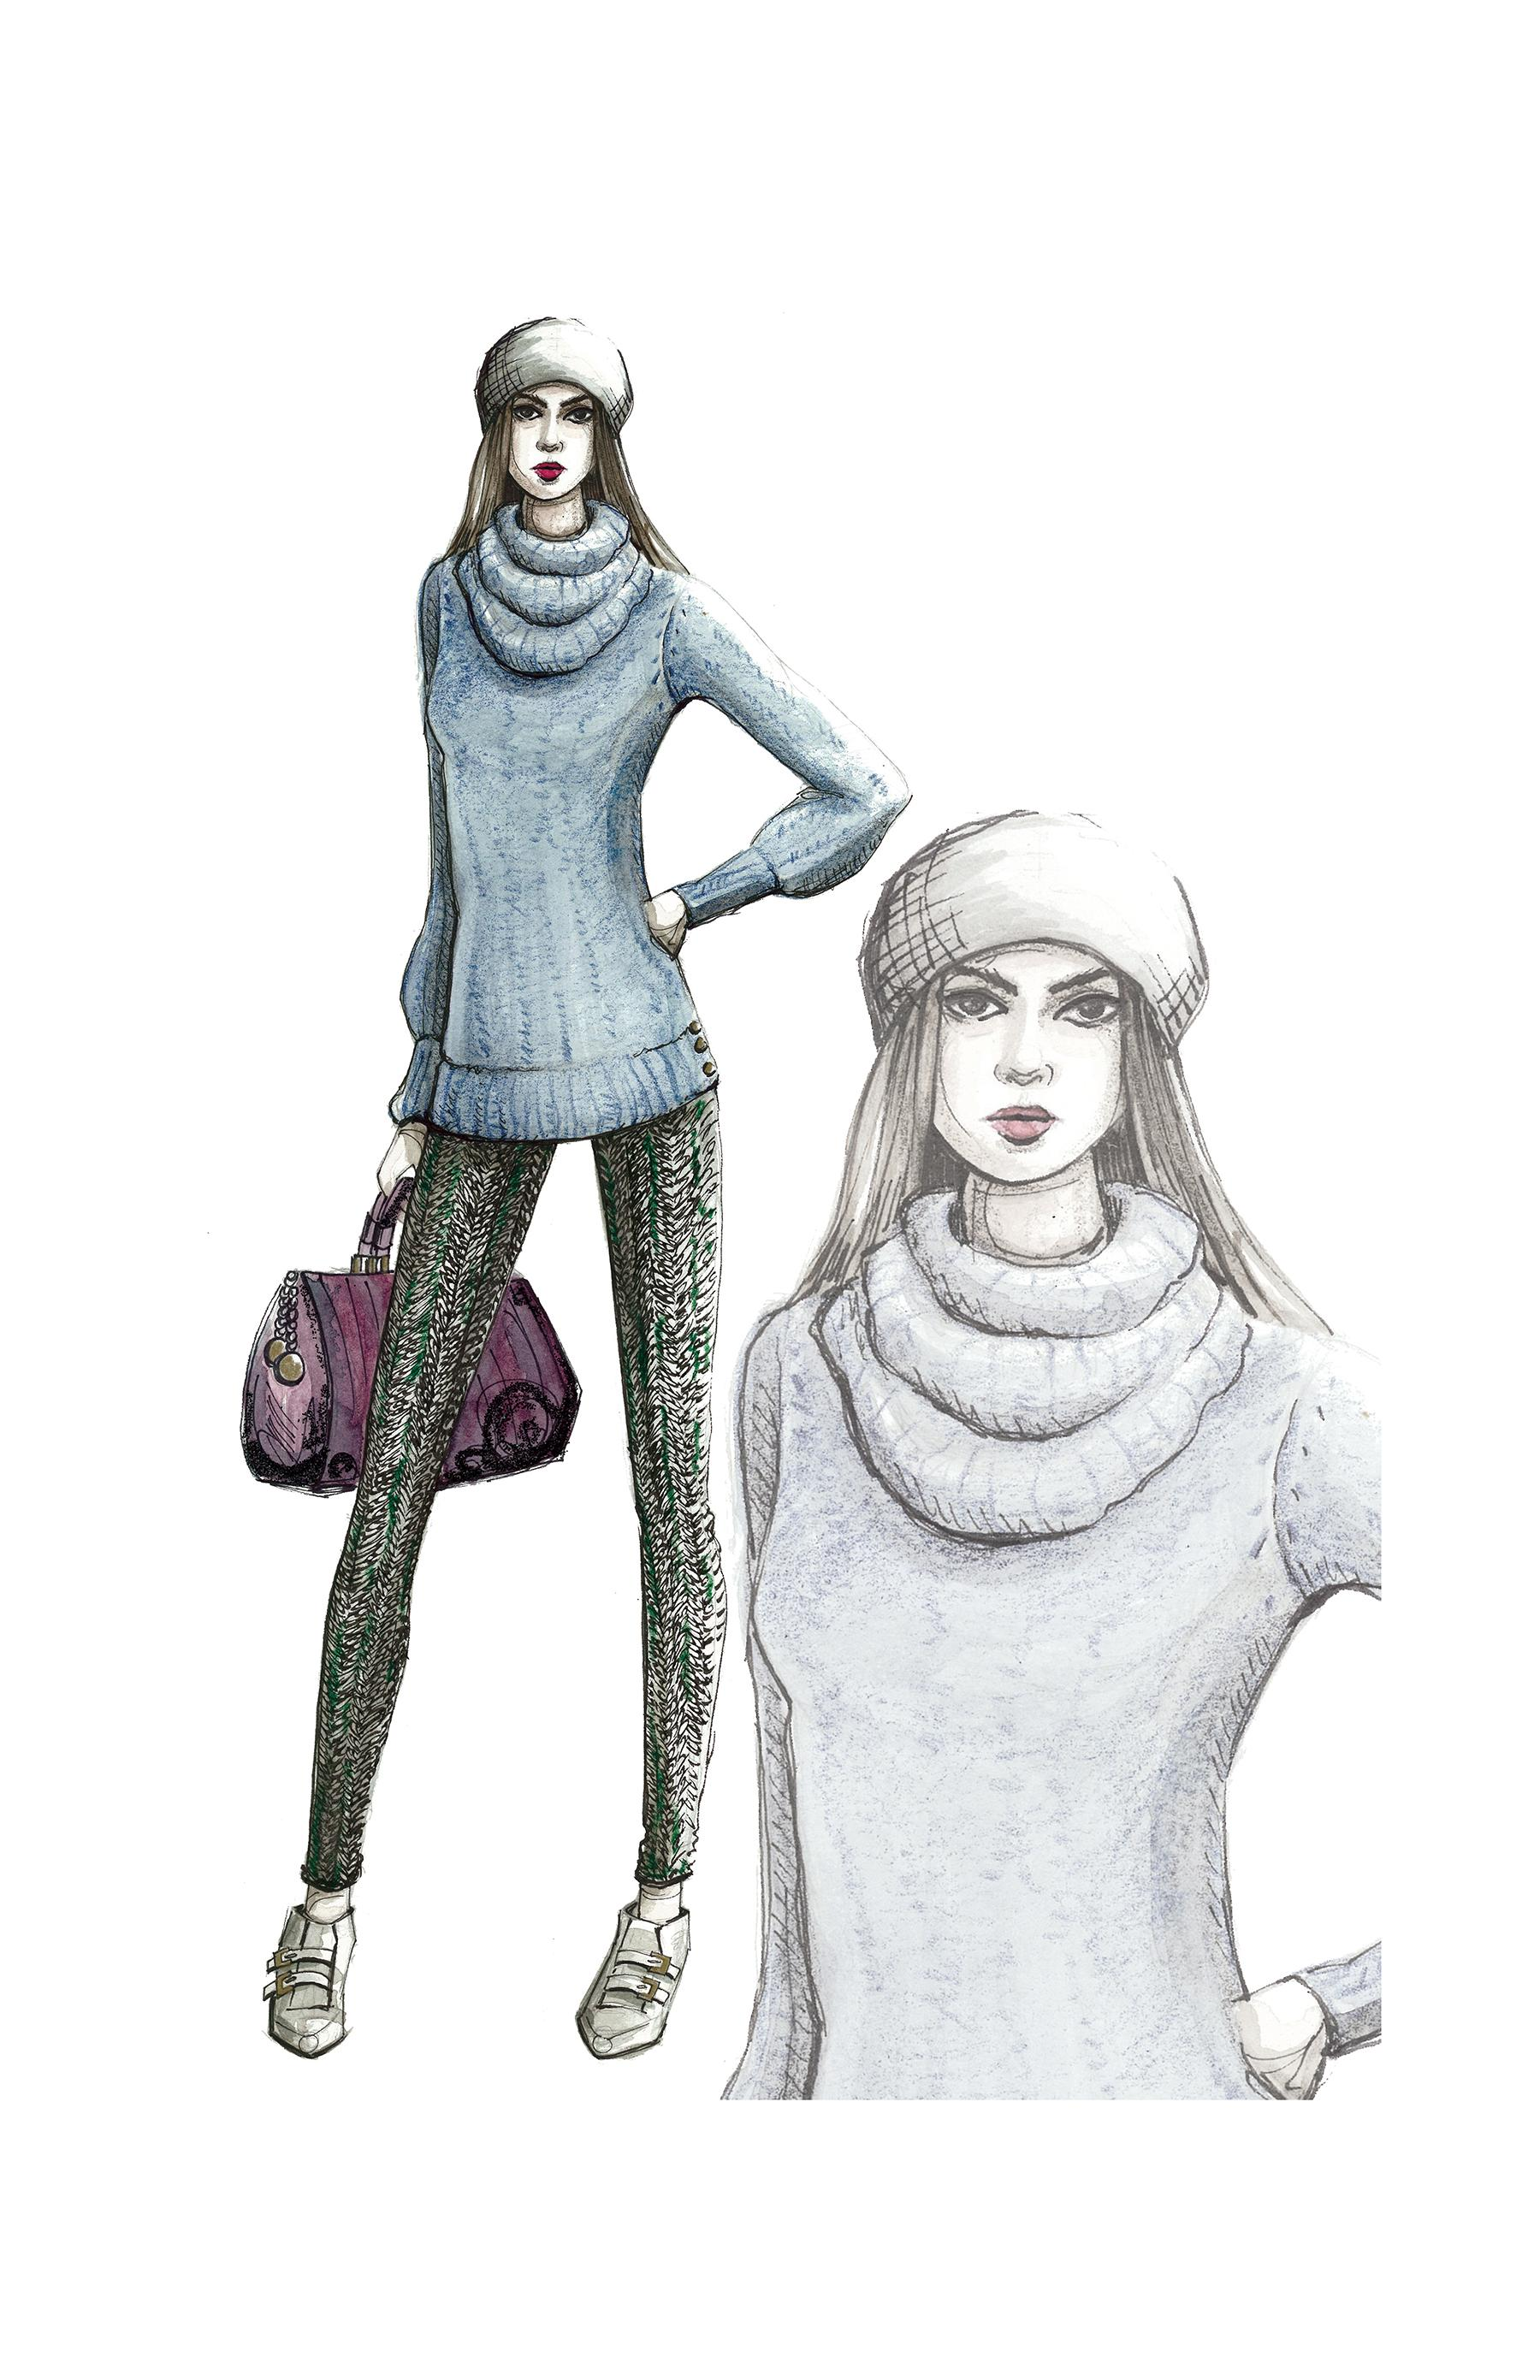 Illustrations - image 8 - student project